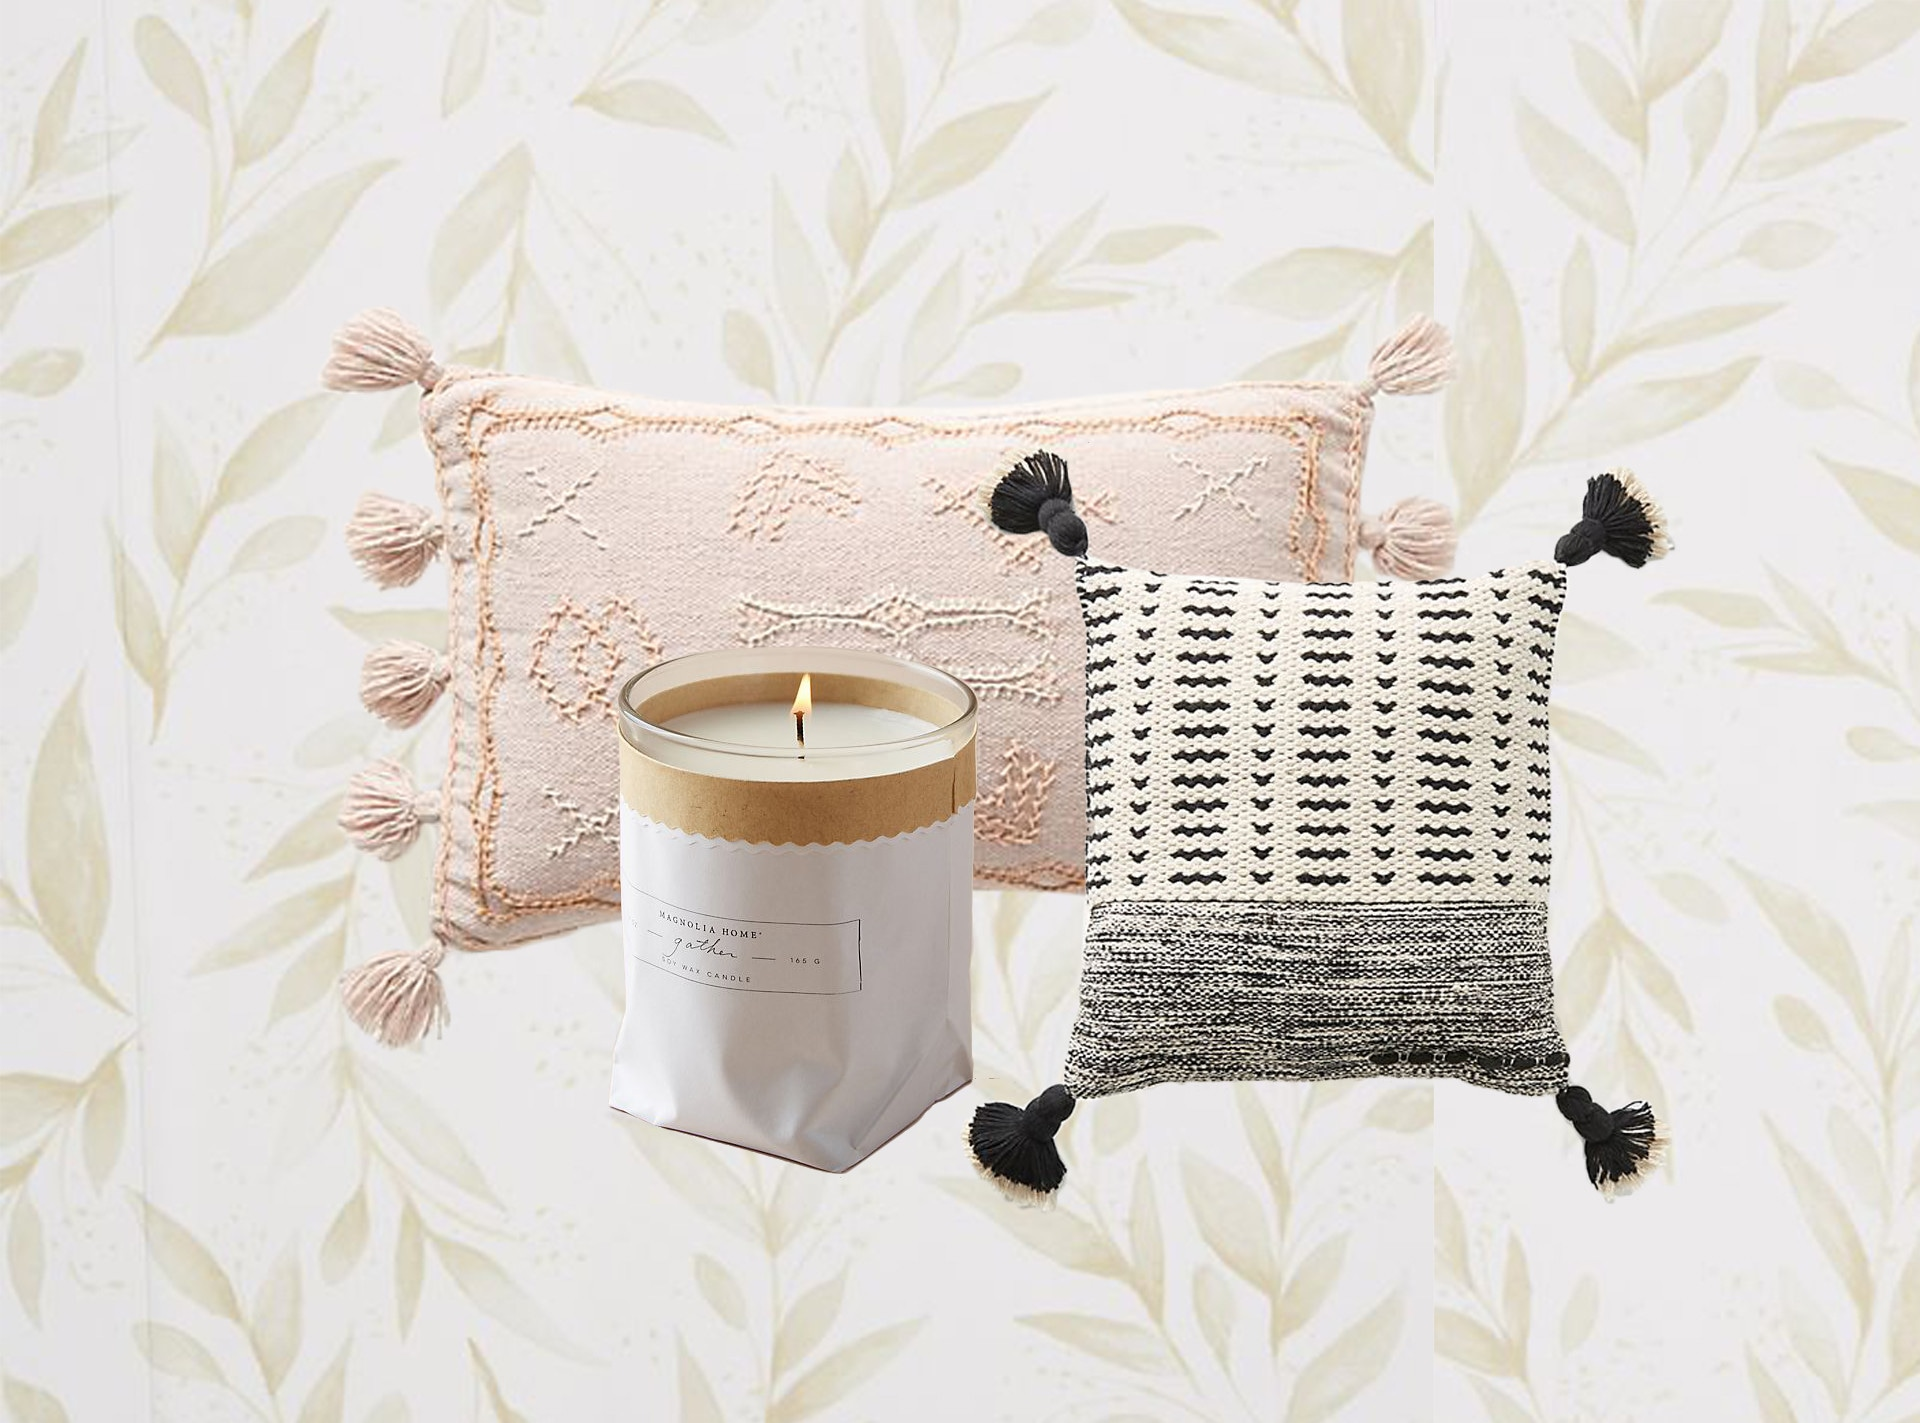 E-Comm: Joanna Gaines' Anthropologie Collection